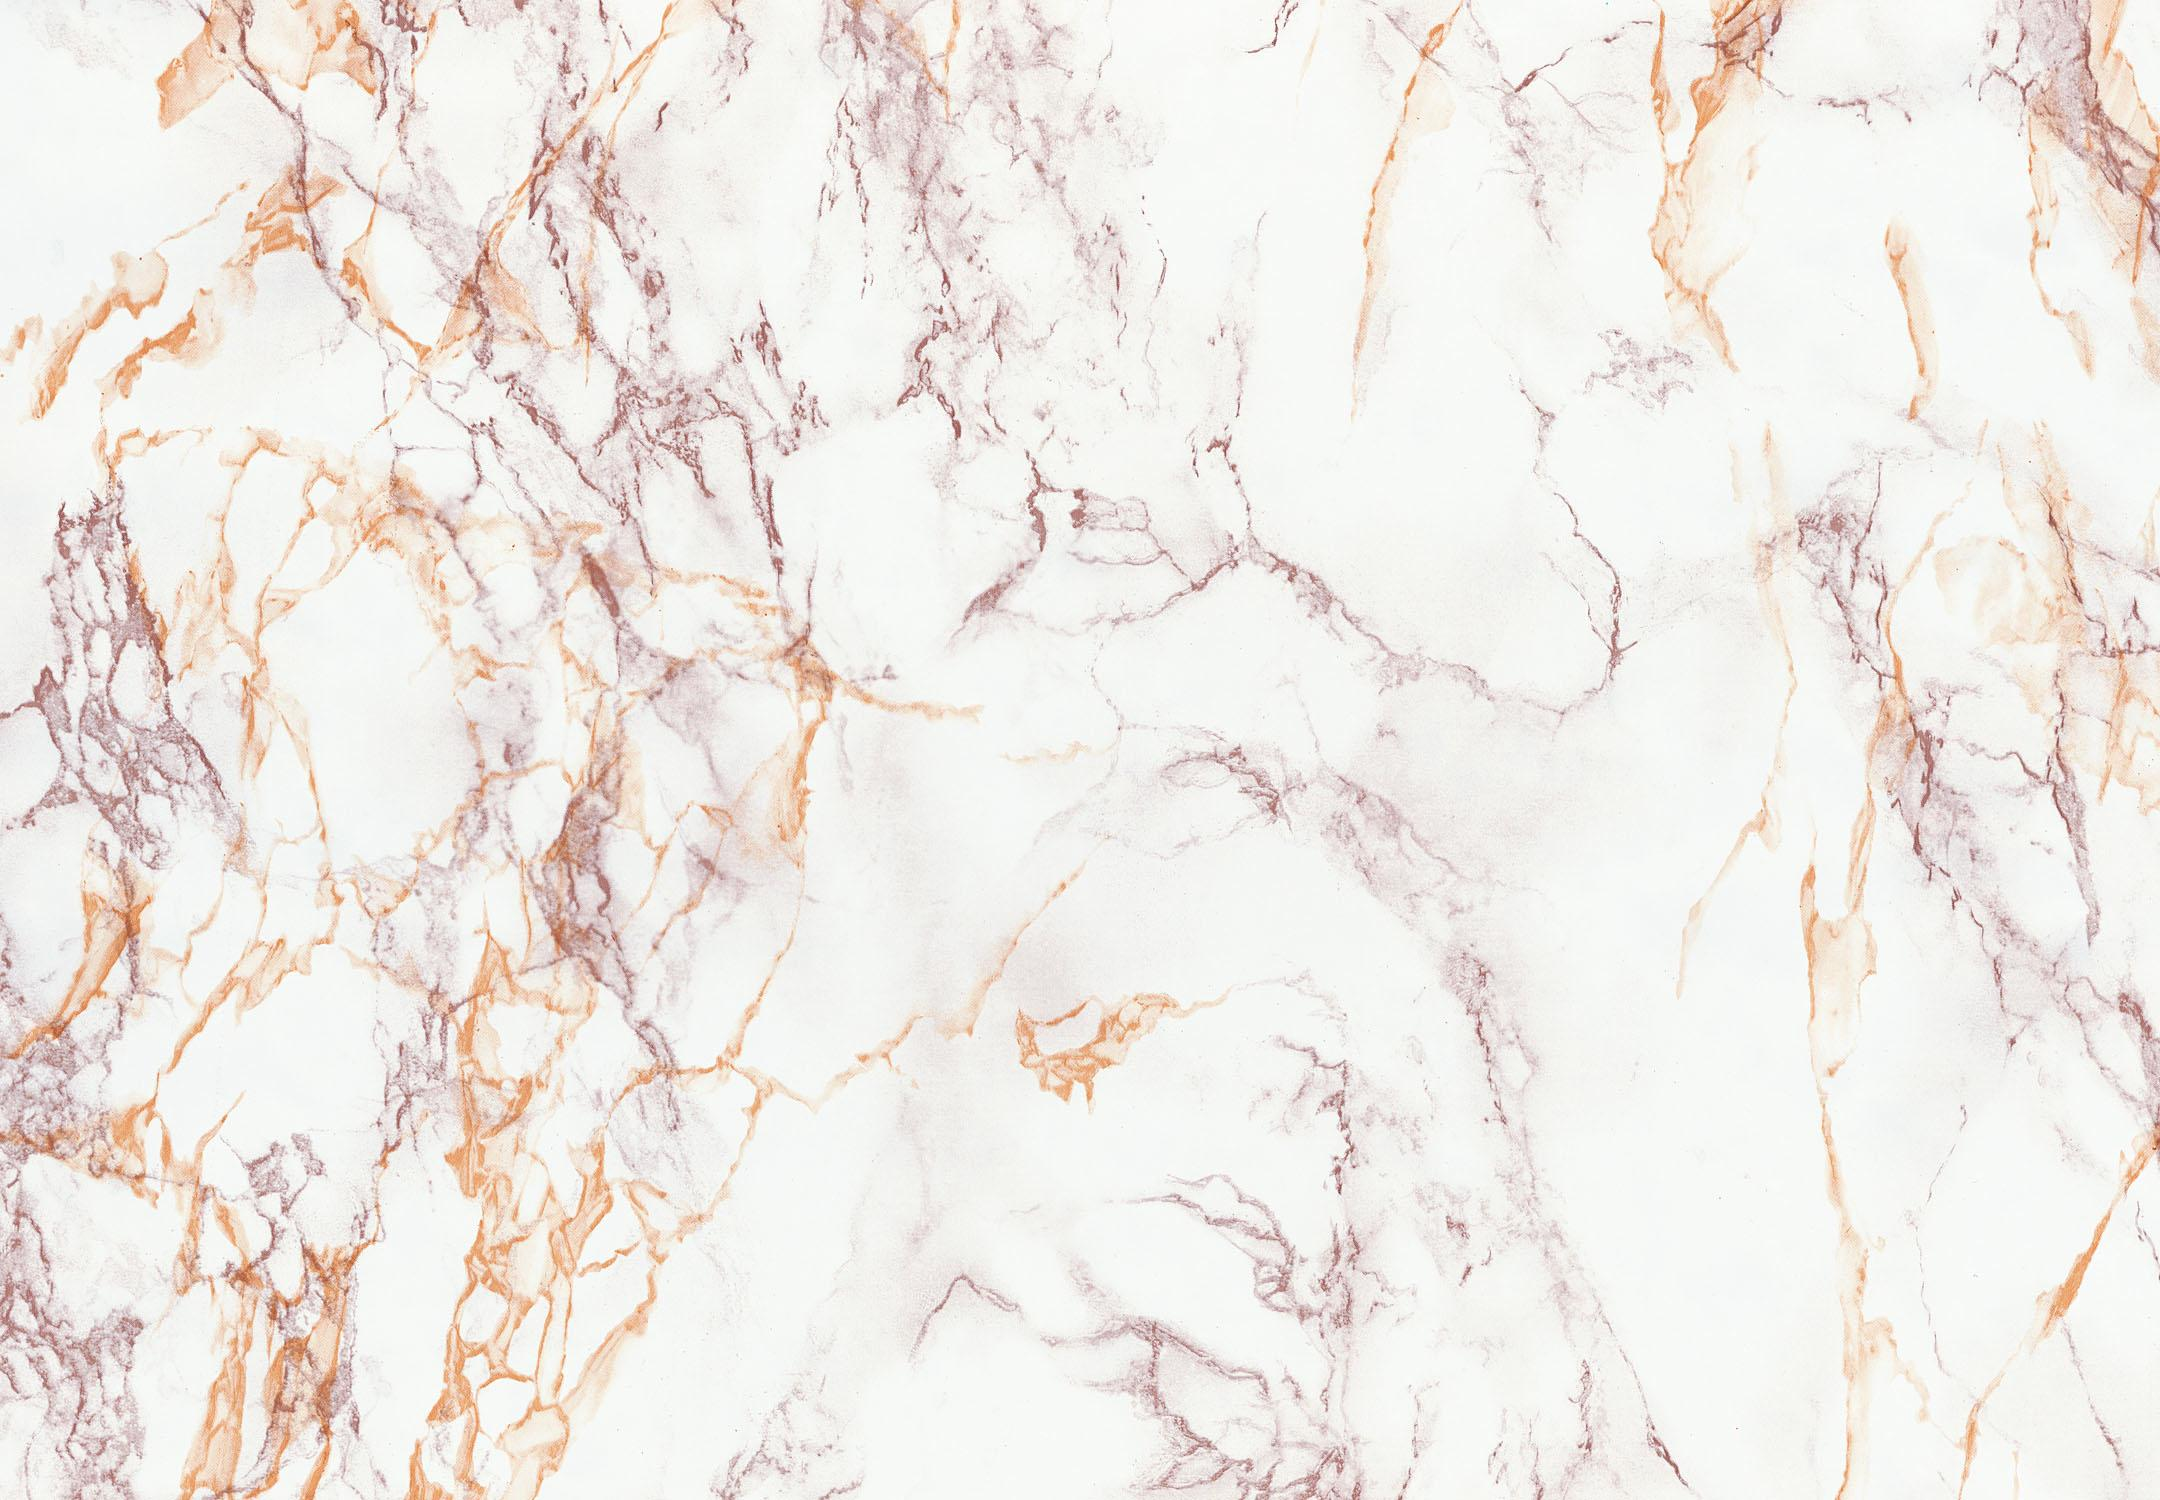 Marble Background Hd Posted By Sarah Mercado